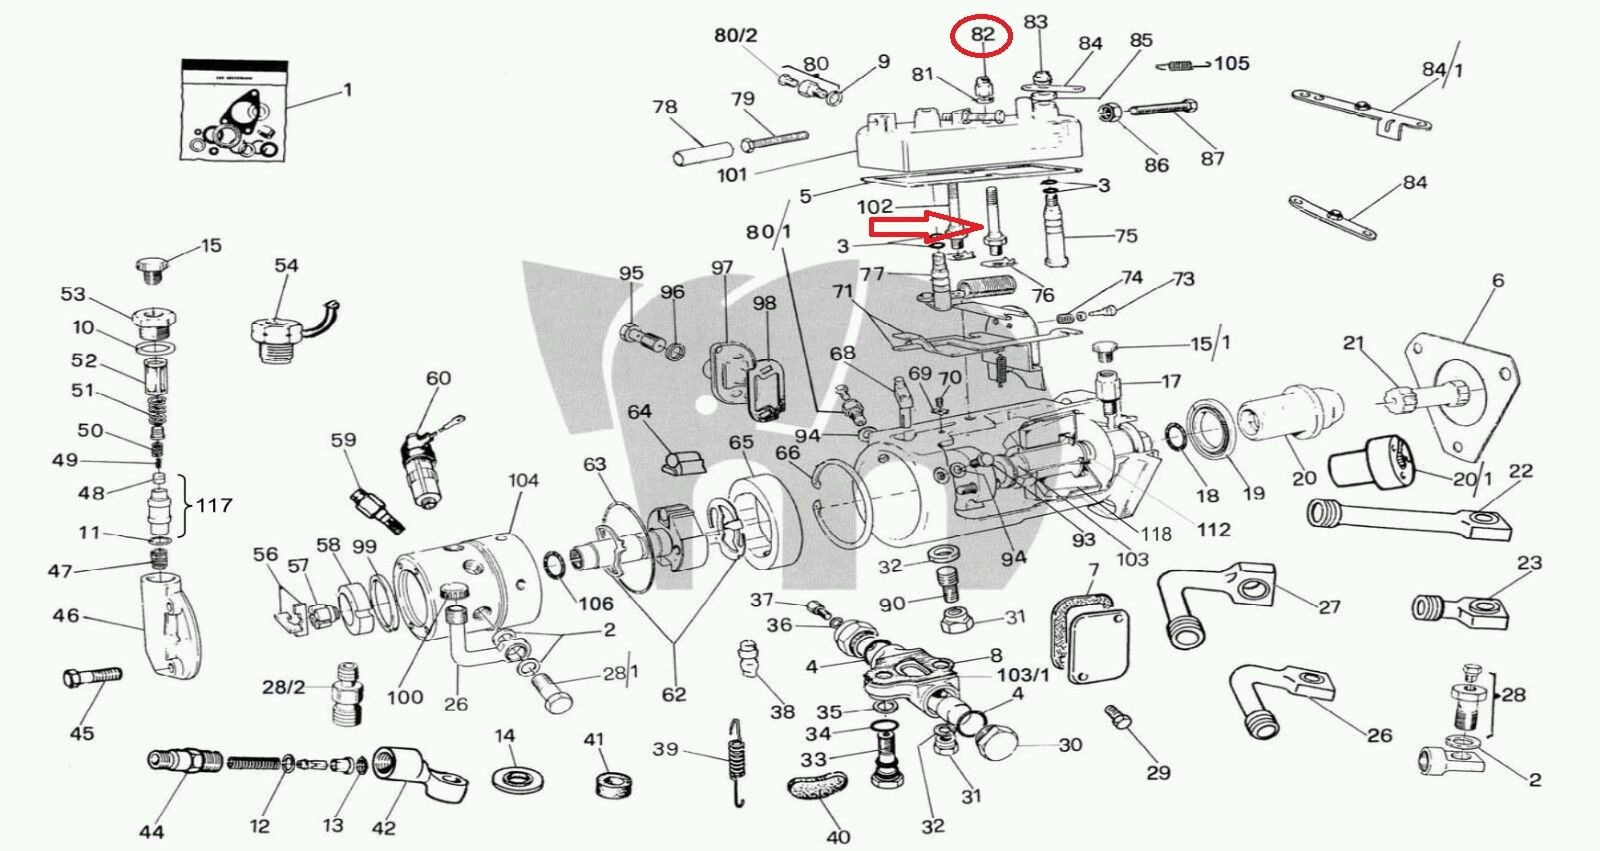 Cav Dpa Top Cover Stud Bolt Screw Nut Diesel Injection